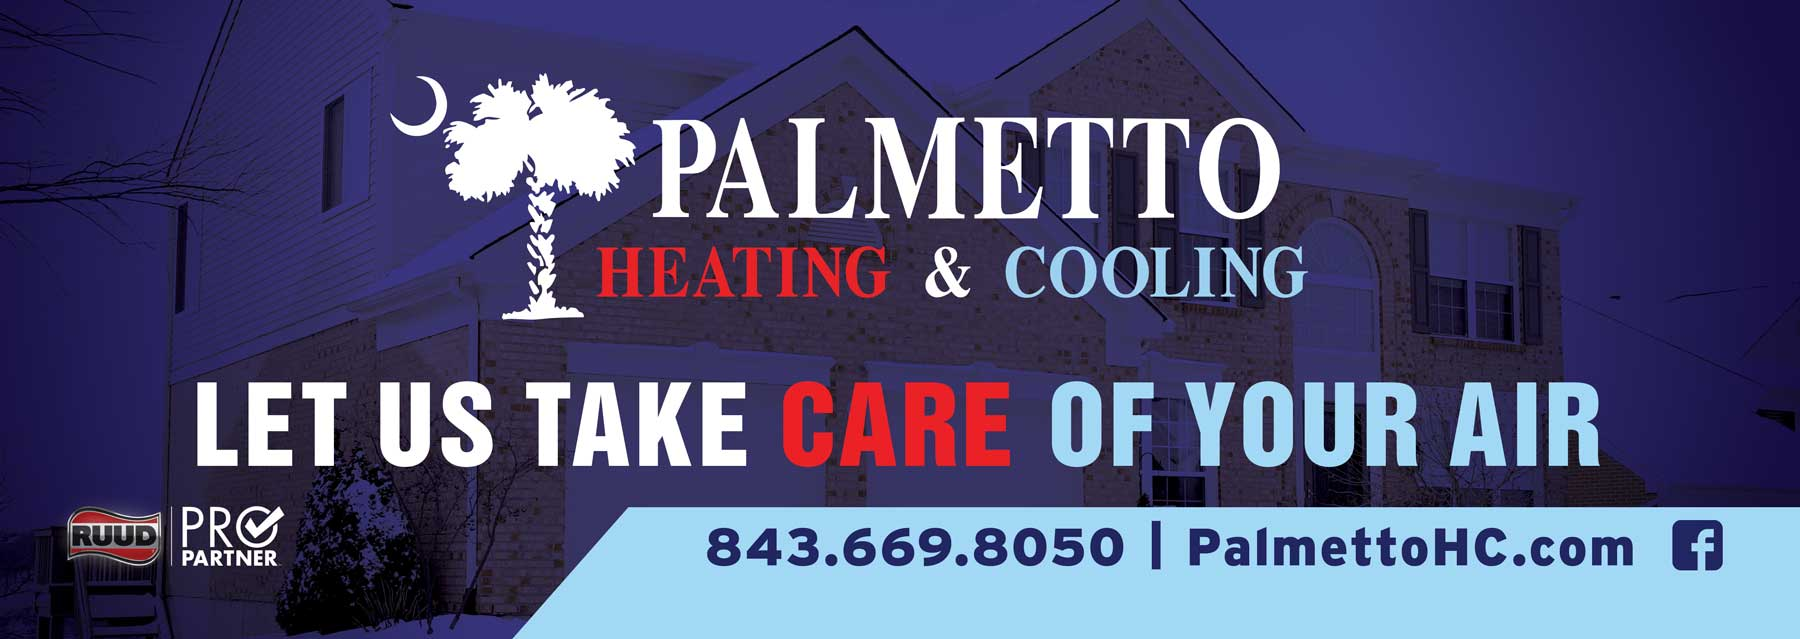 Get a Spring checkup from Palmetto Heating and Cooling!